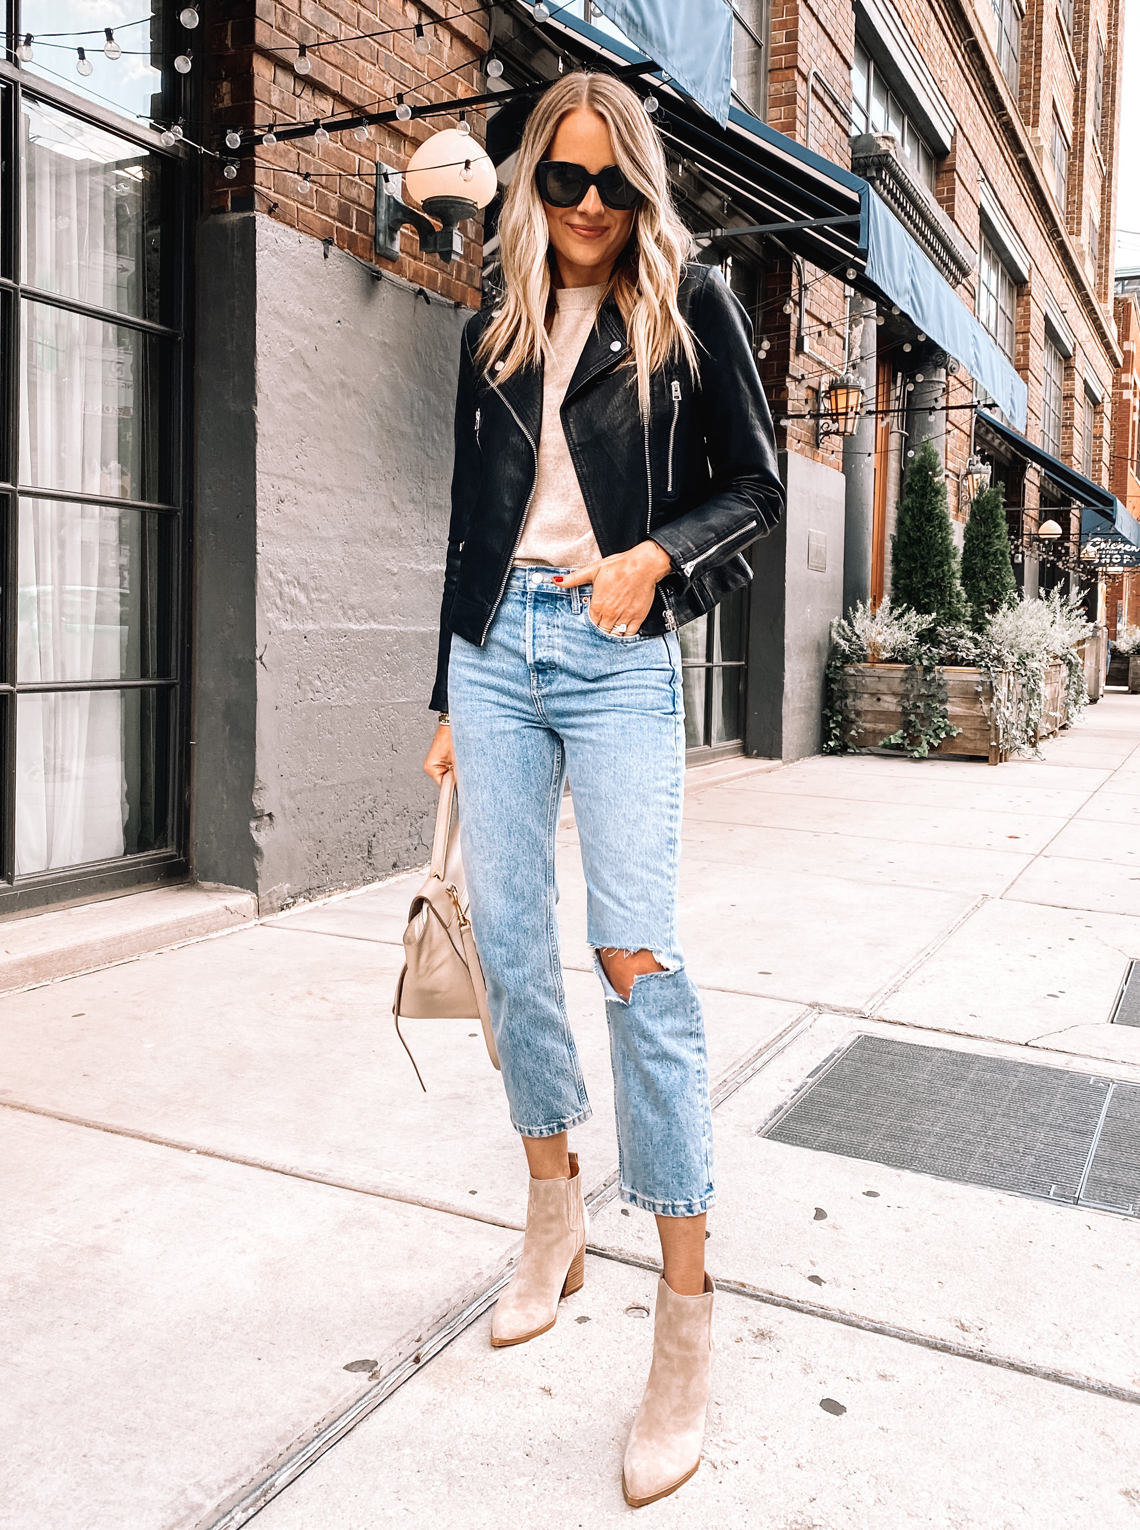 Fashion Jackson Nordstrom Annivesrary Sale Topshop Black Leather Jacket Topshop Ripped Jeans Marc Fisher Tan Suede Booties